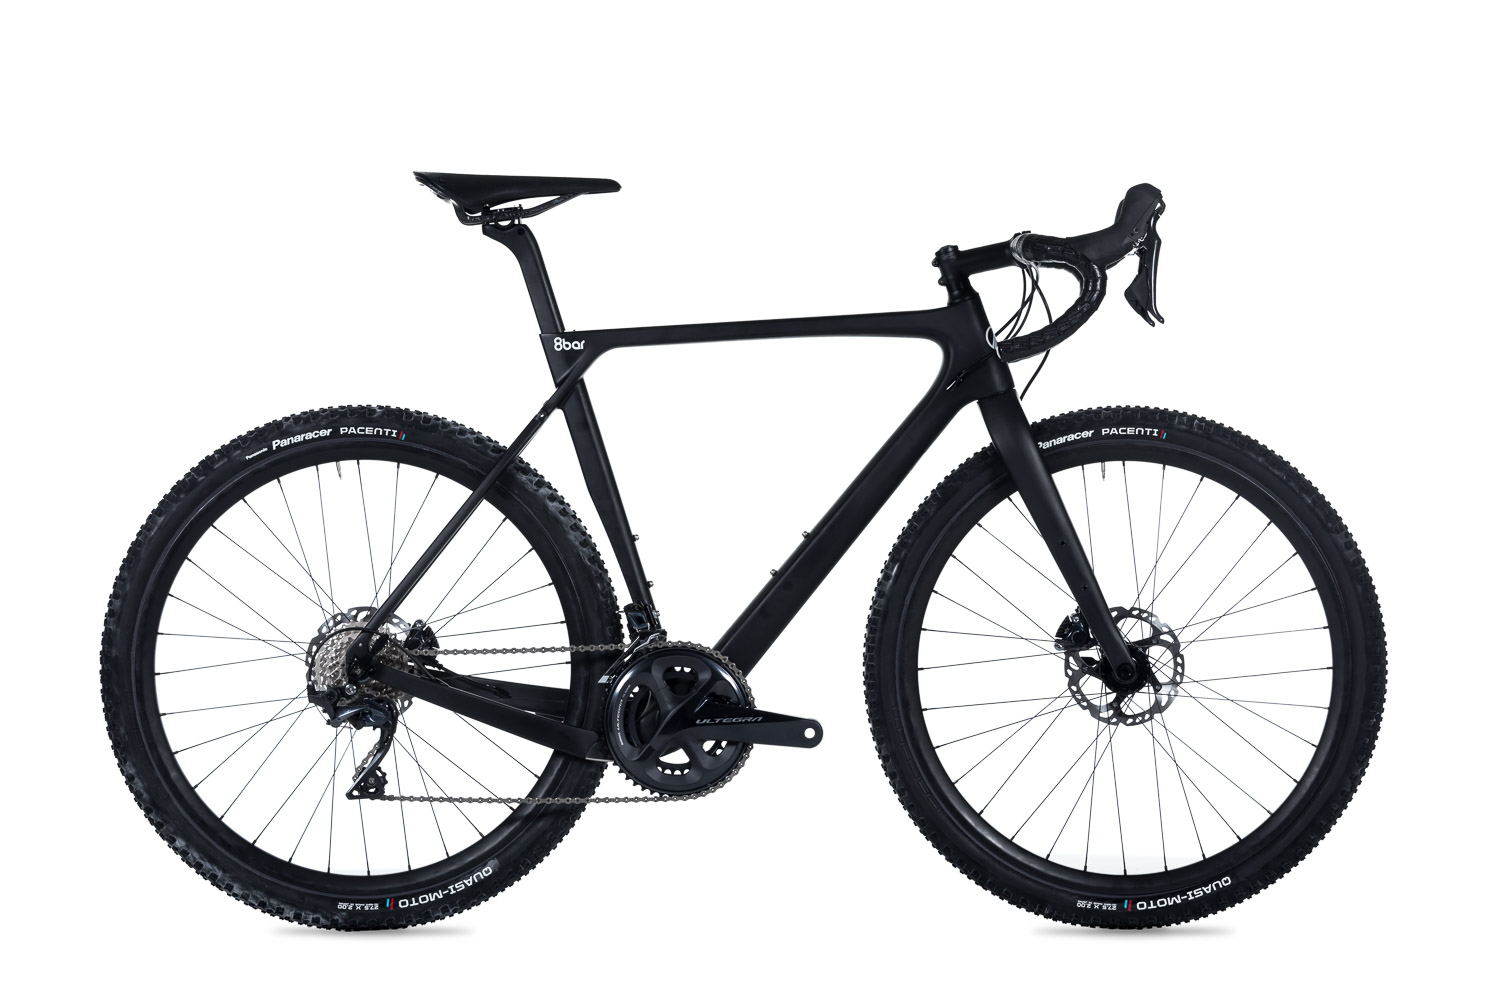 8bar-complete-bike-grunewald-carbon-cx-black-studio-lr-1